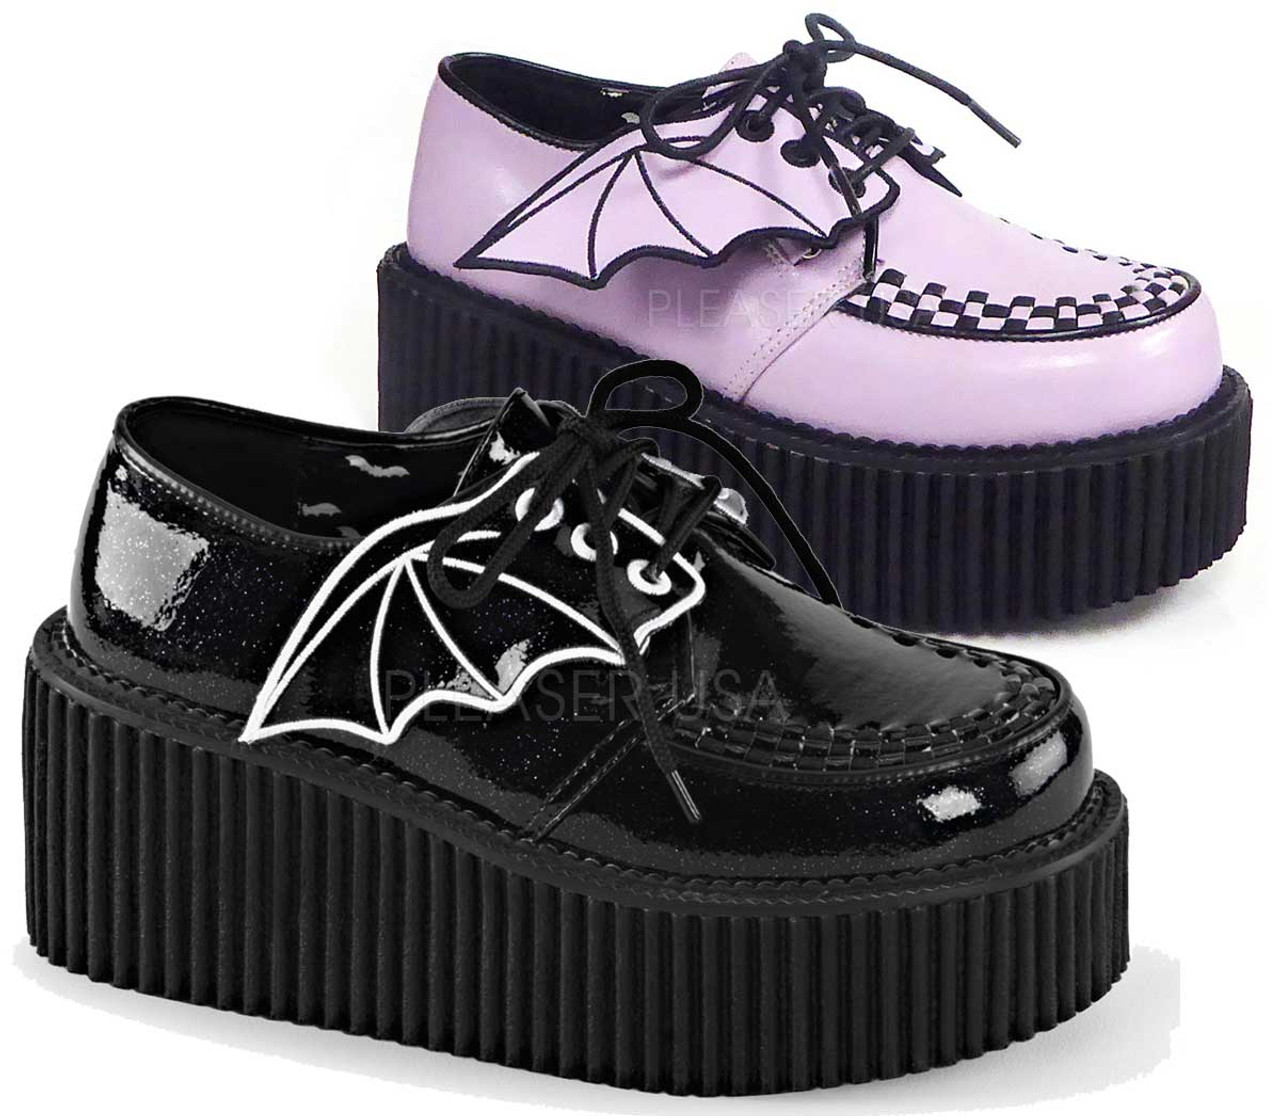 Goth Creeper with Bat Wings